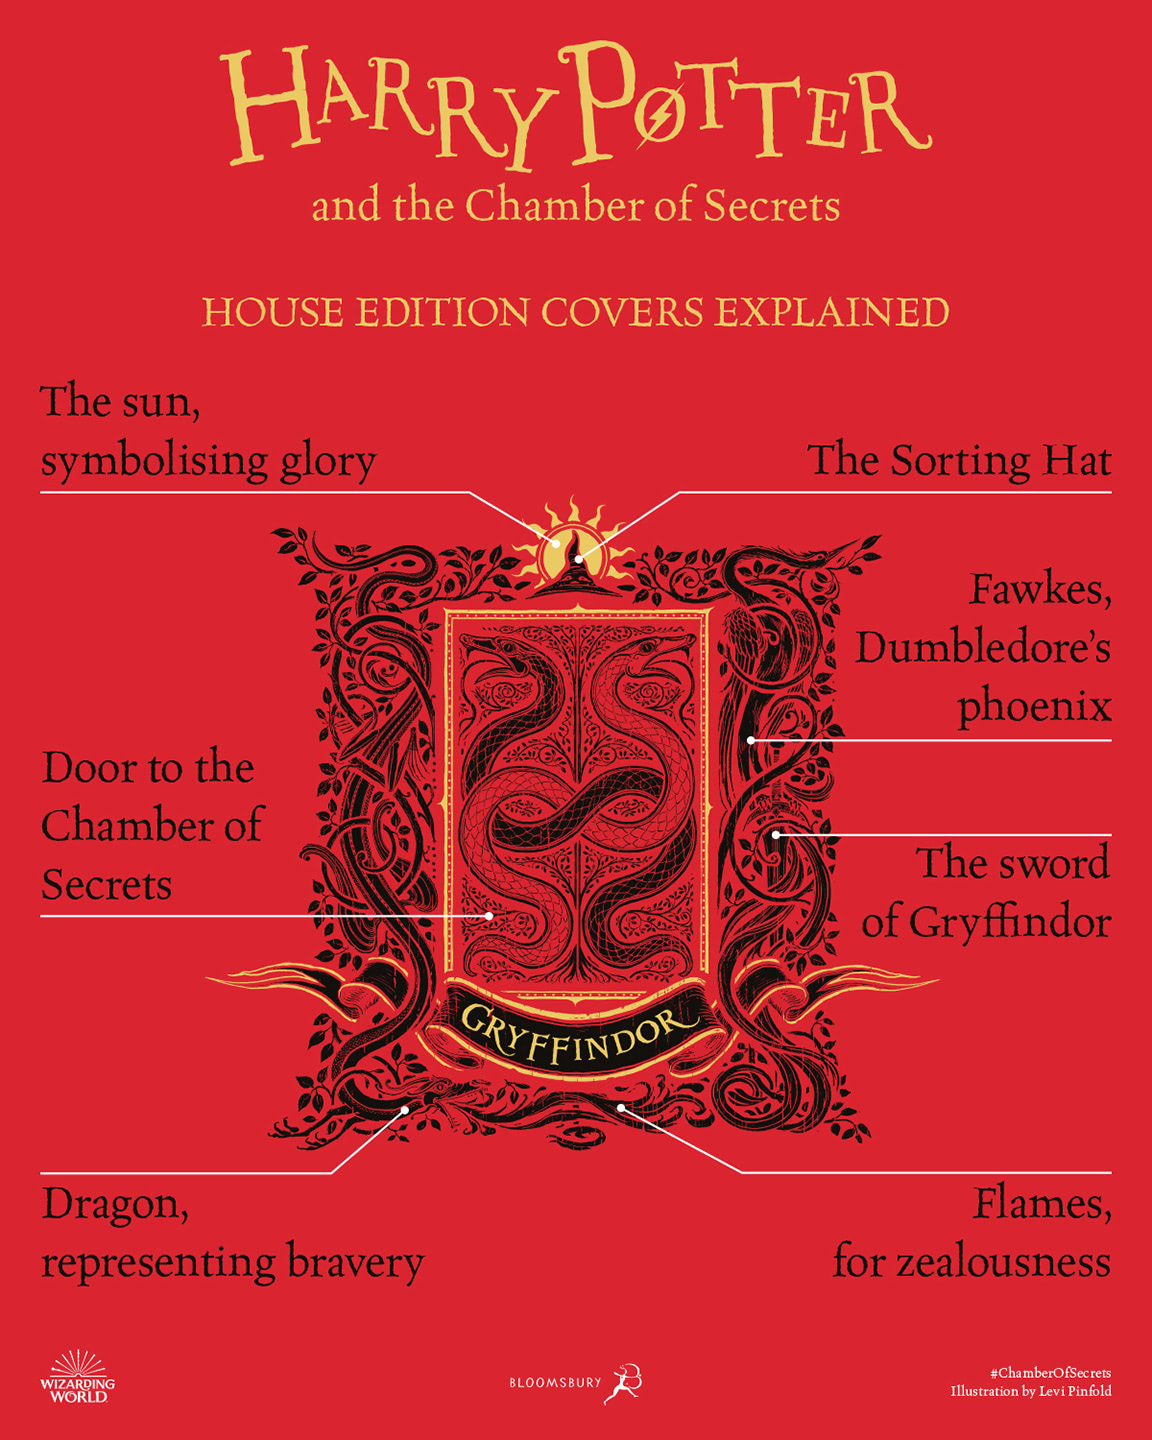 'Chamber of Secrets' house edition cover artwork chart (Gryffindor)